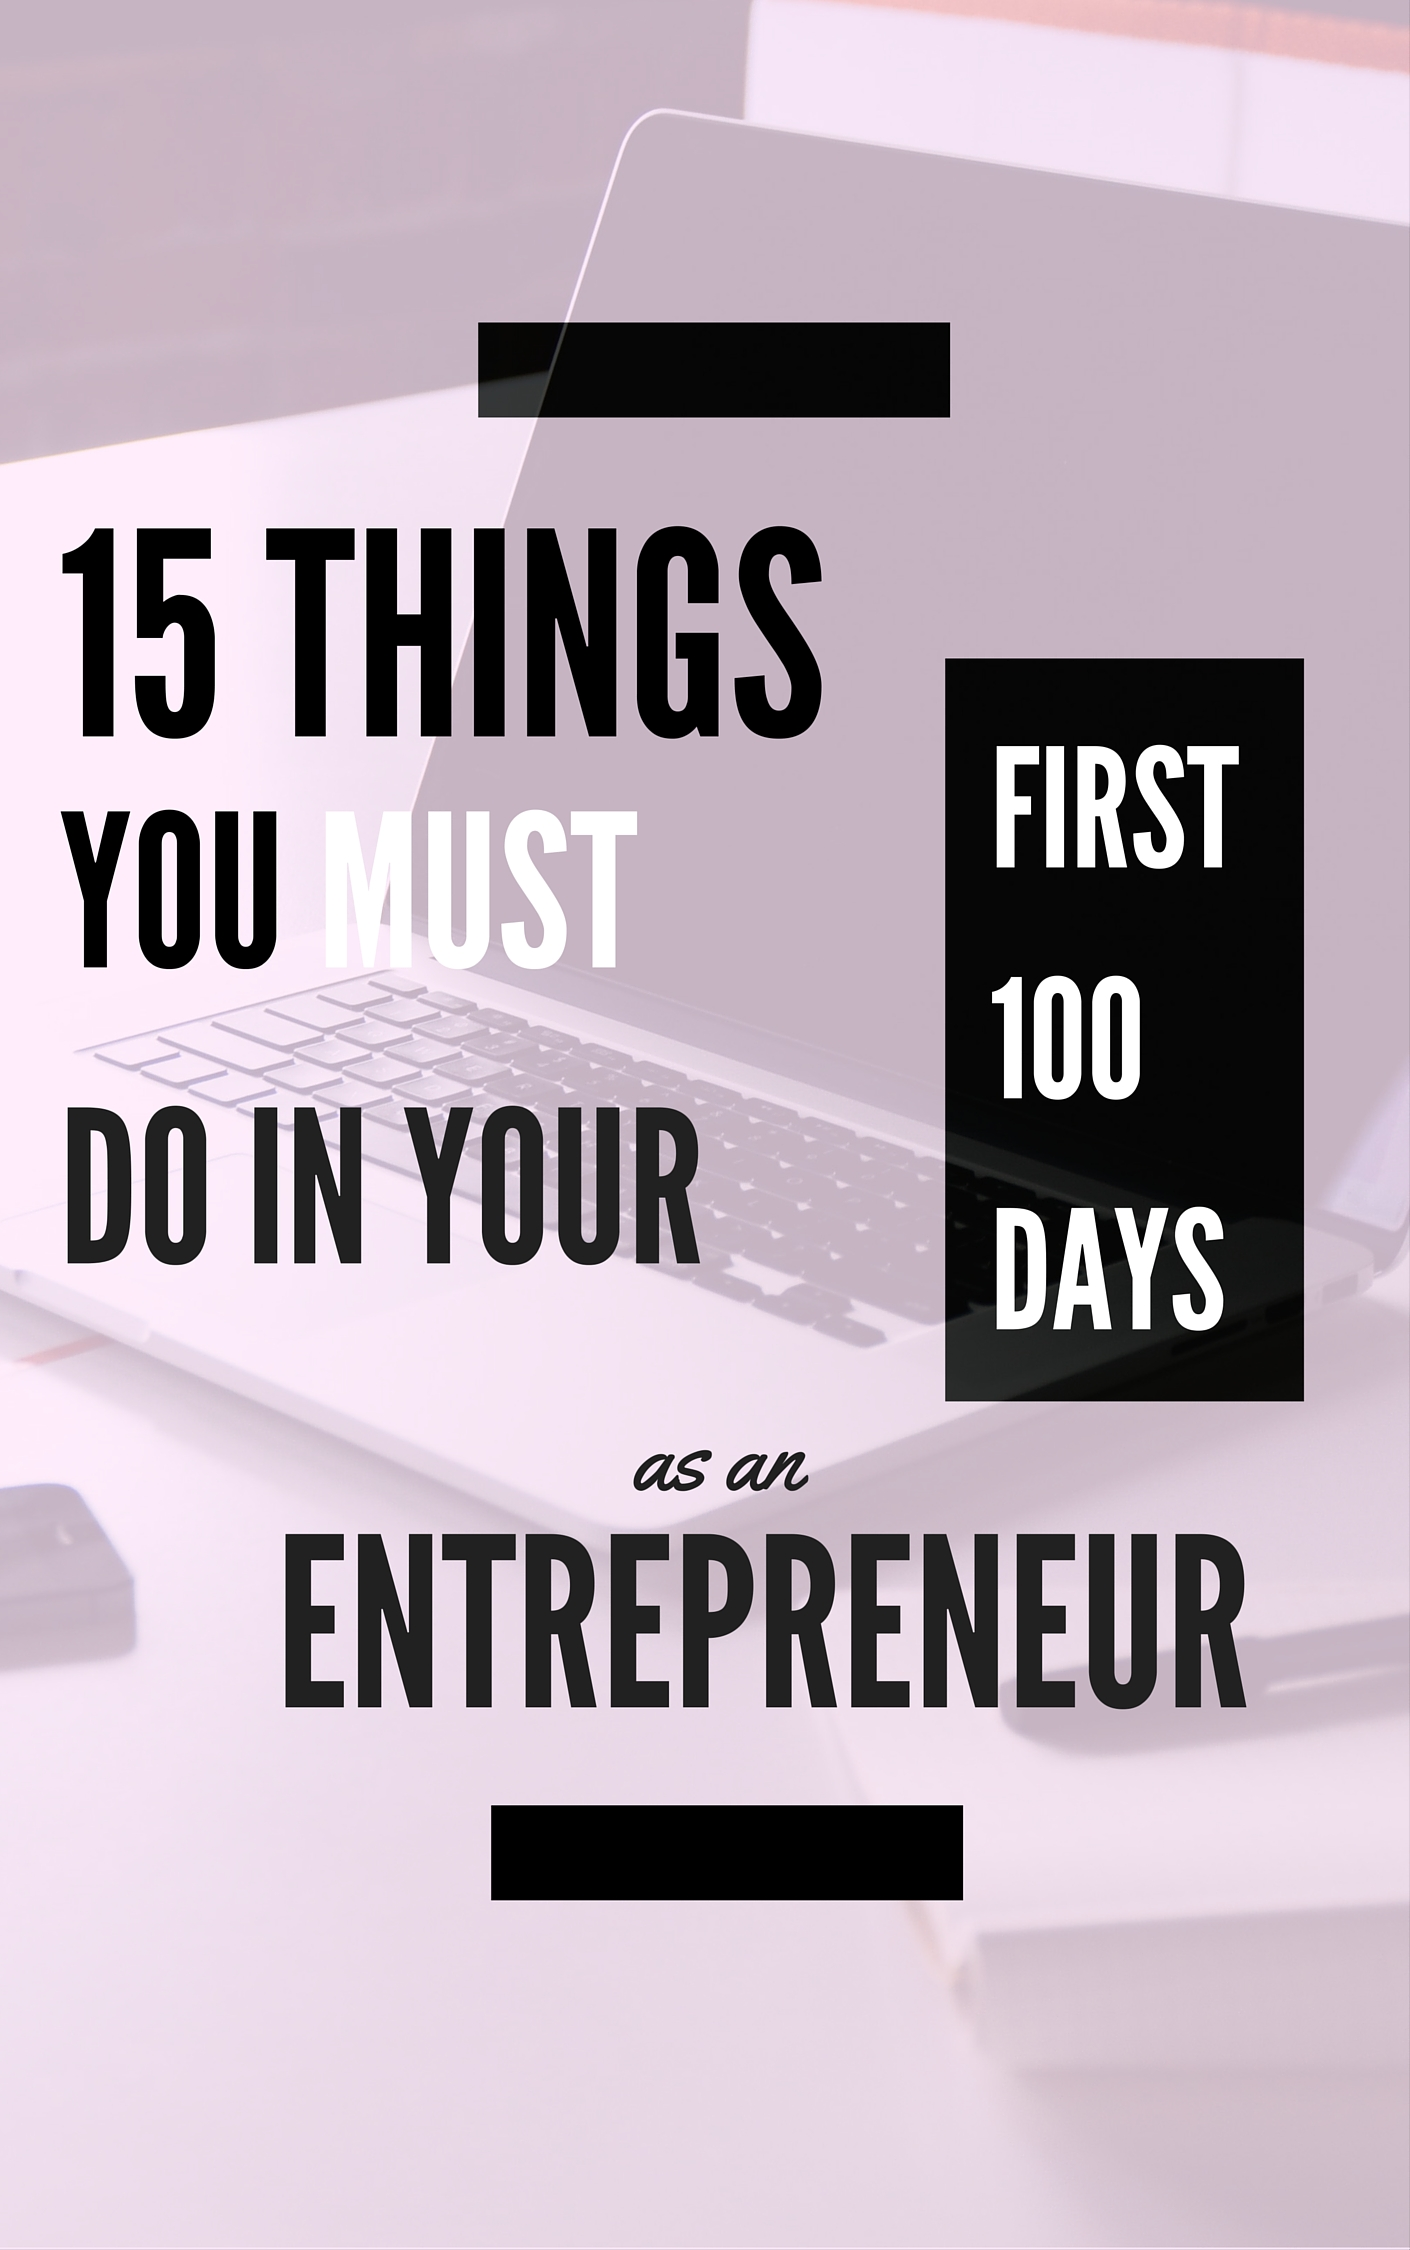 Advice from a really-converted entrepreneur: 15 things you must do in your first 100 days as an entrepreneur.